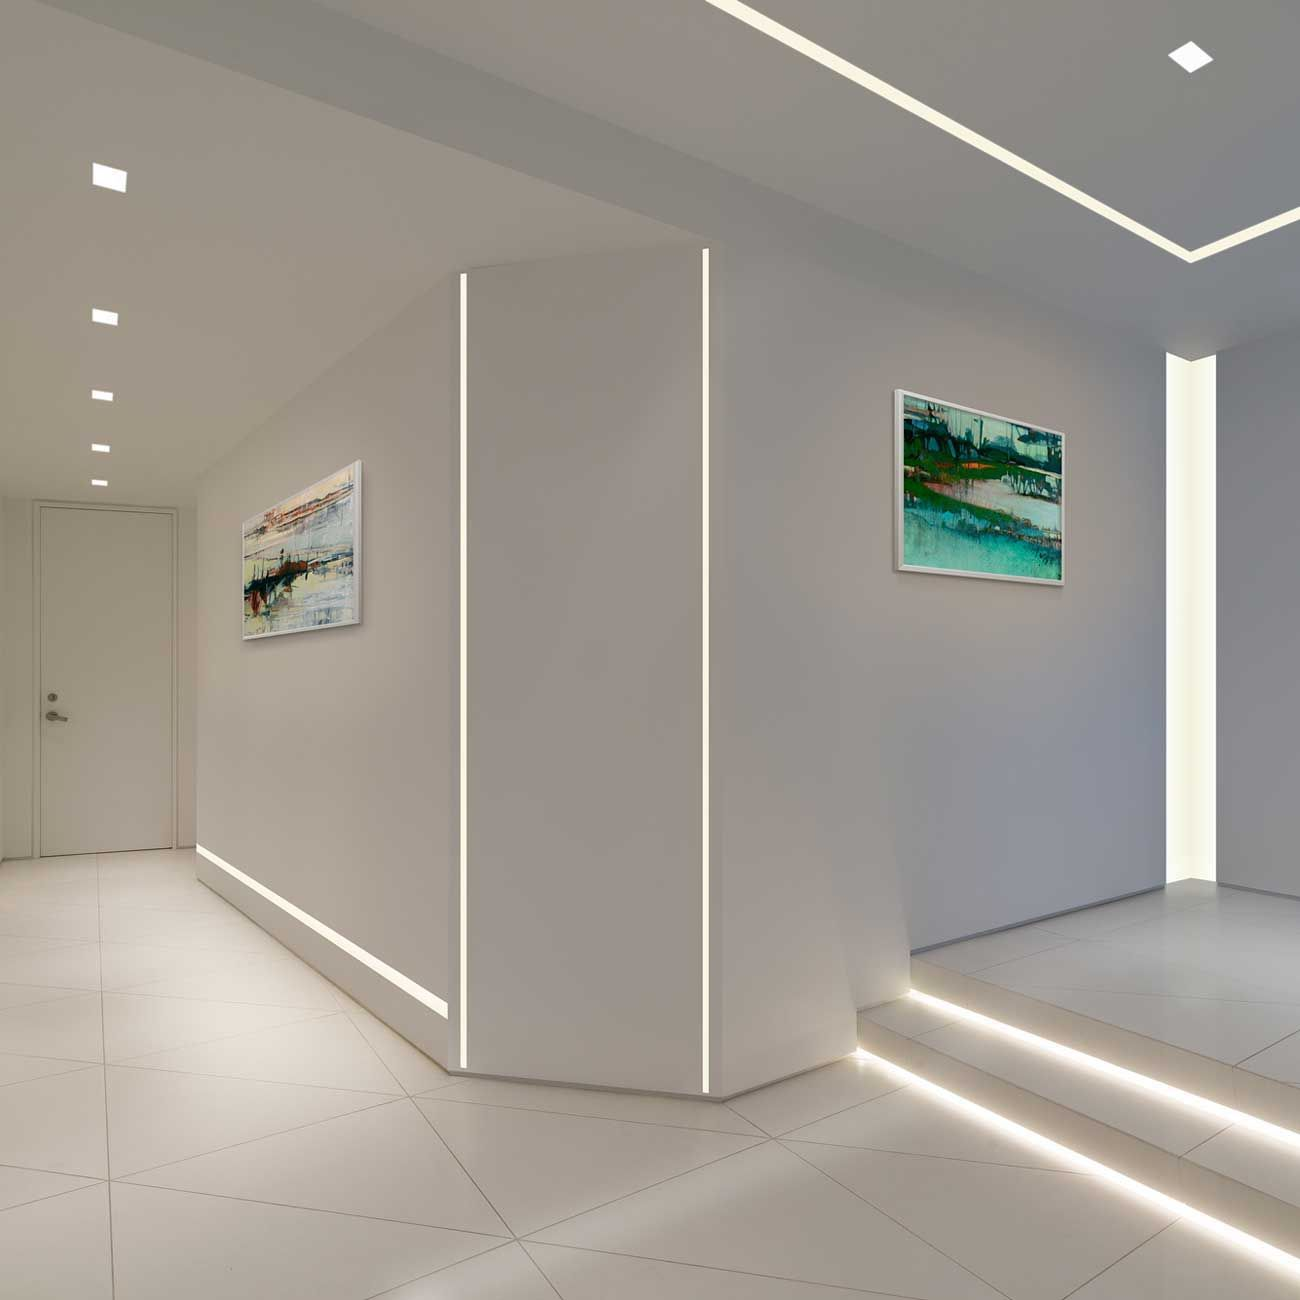 Reveal Cove Pathway Plaster In Led System 24v By Pureedge